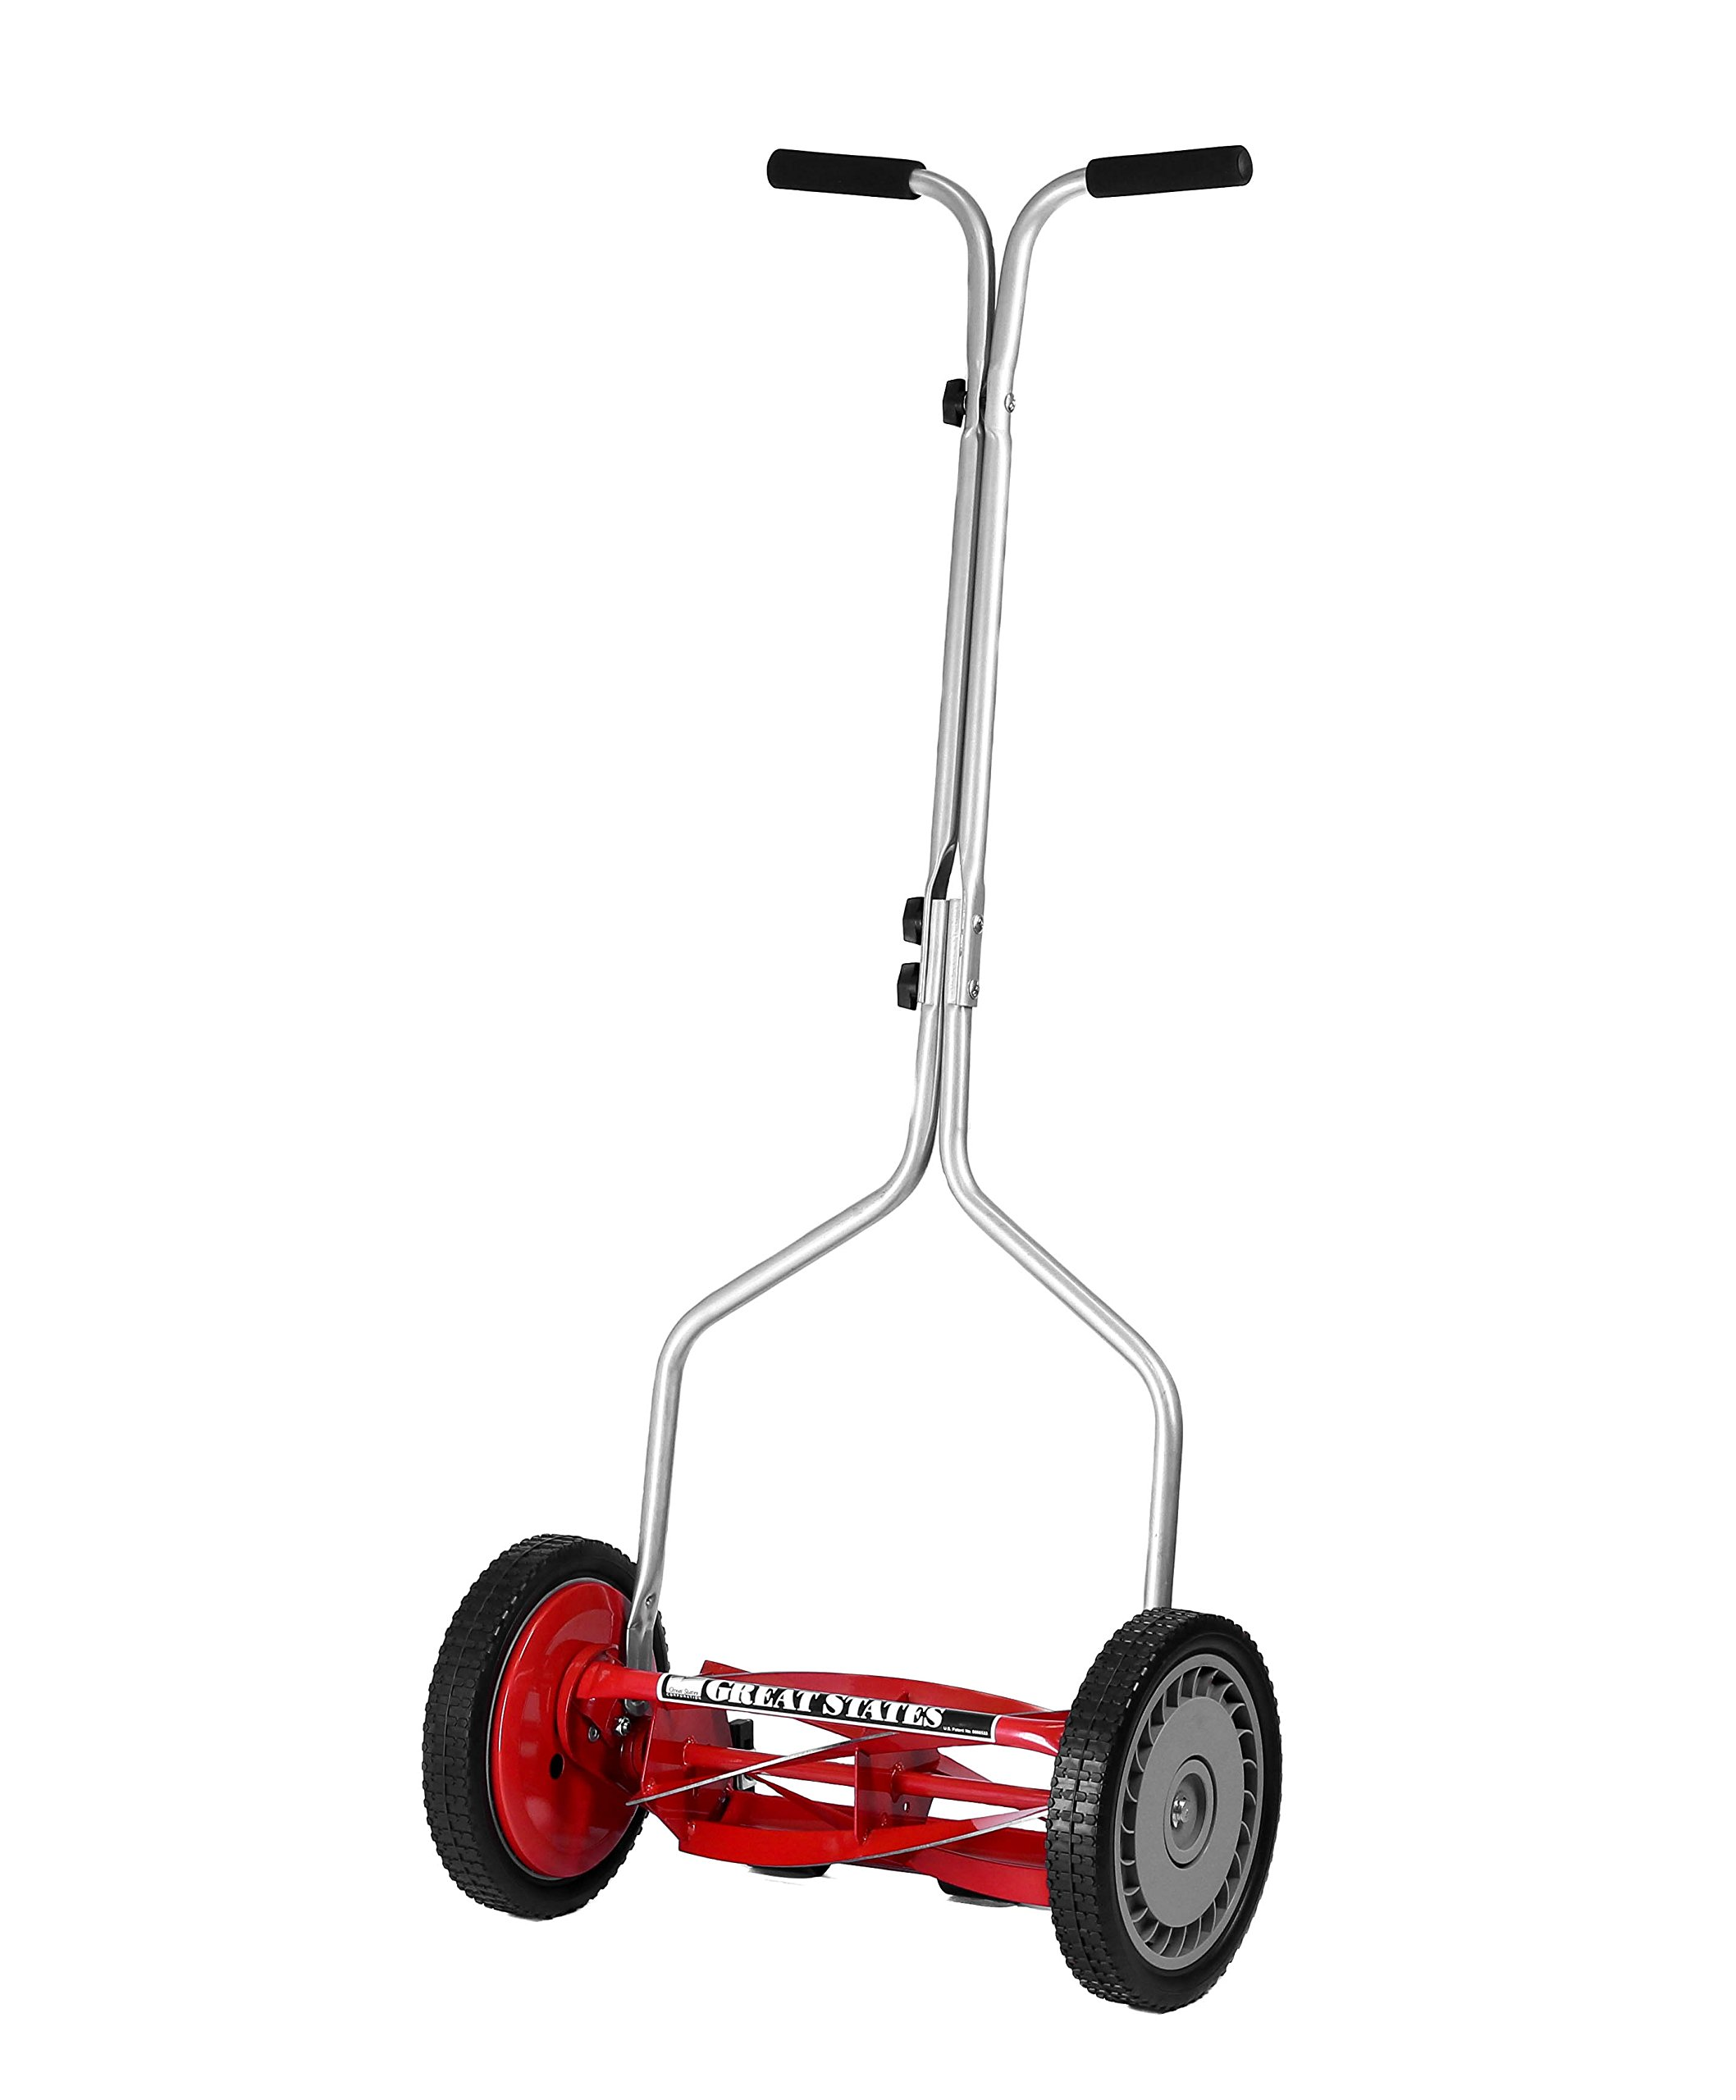 Great States 304-14 14-Inch 5-Blade Push Reel Lawn Mower, Red by Great States